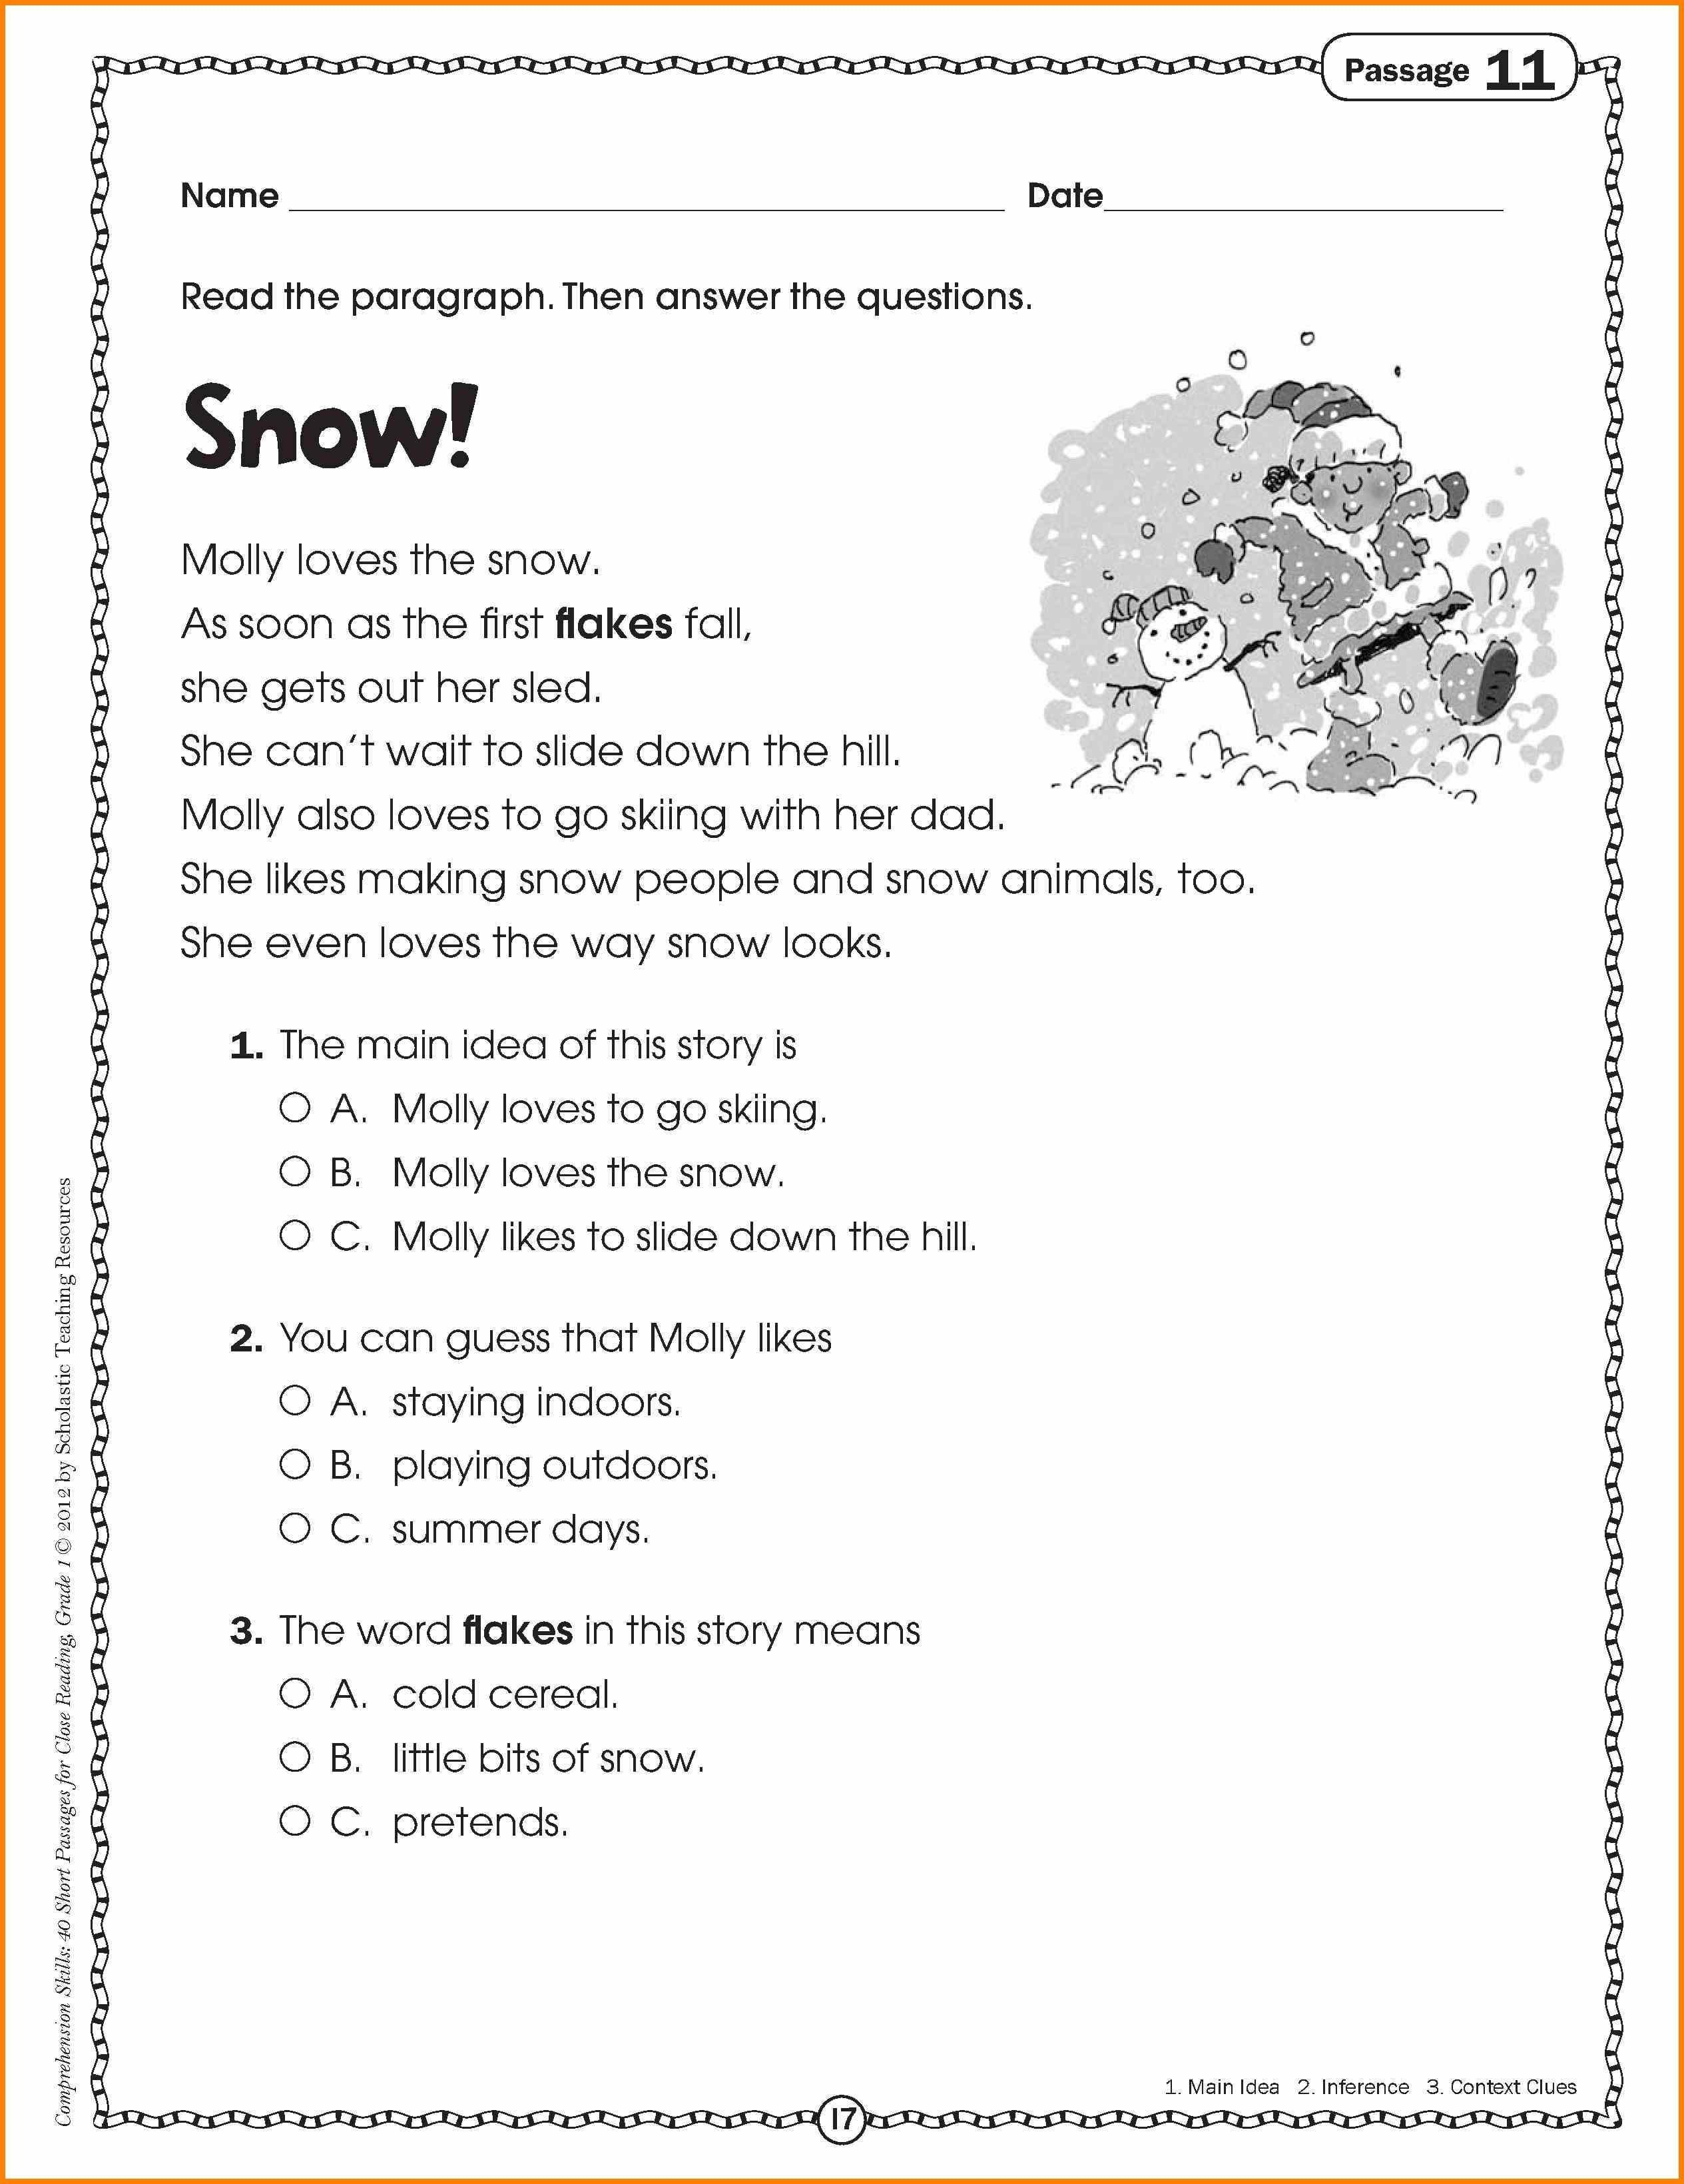 10 Unique Main Idea Worksheets 1St Grade 9 reading passages for 2nd grade cath fordgroup 2